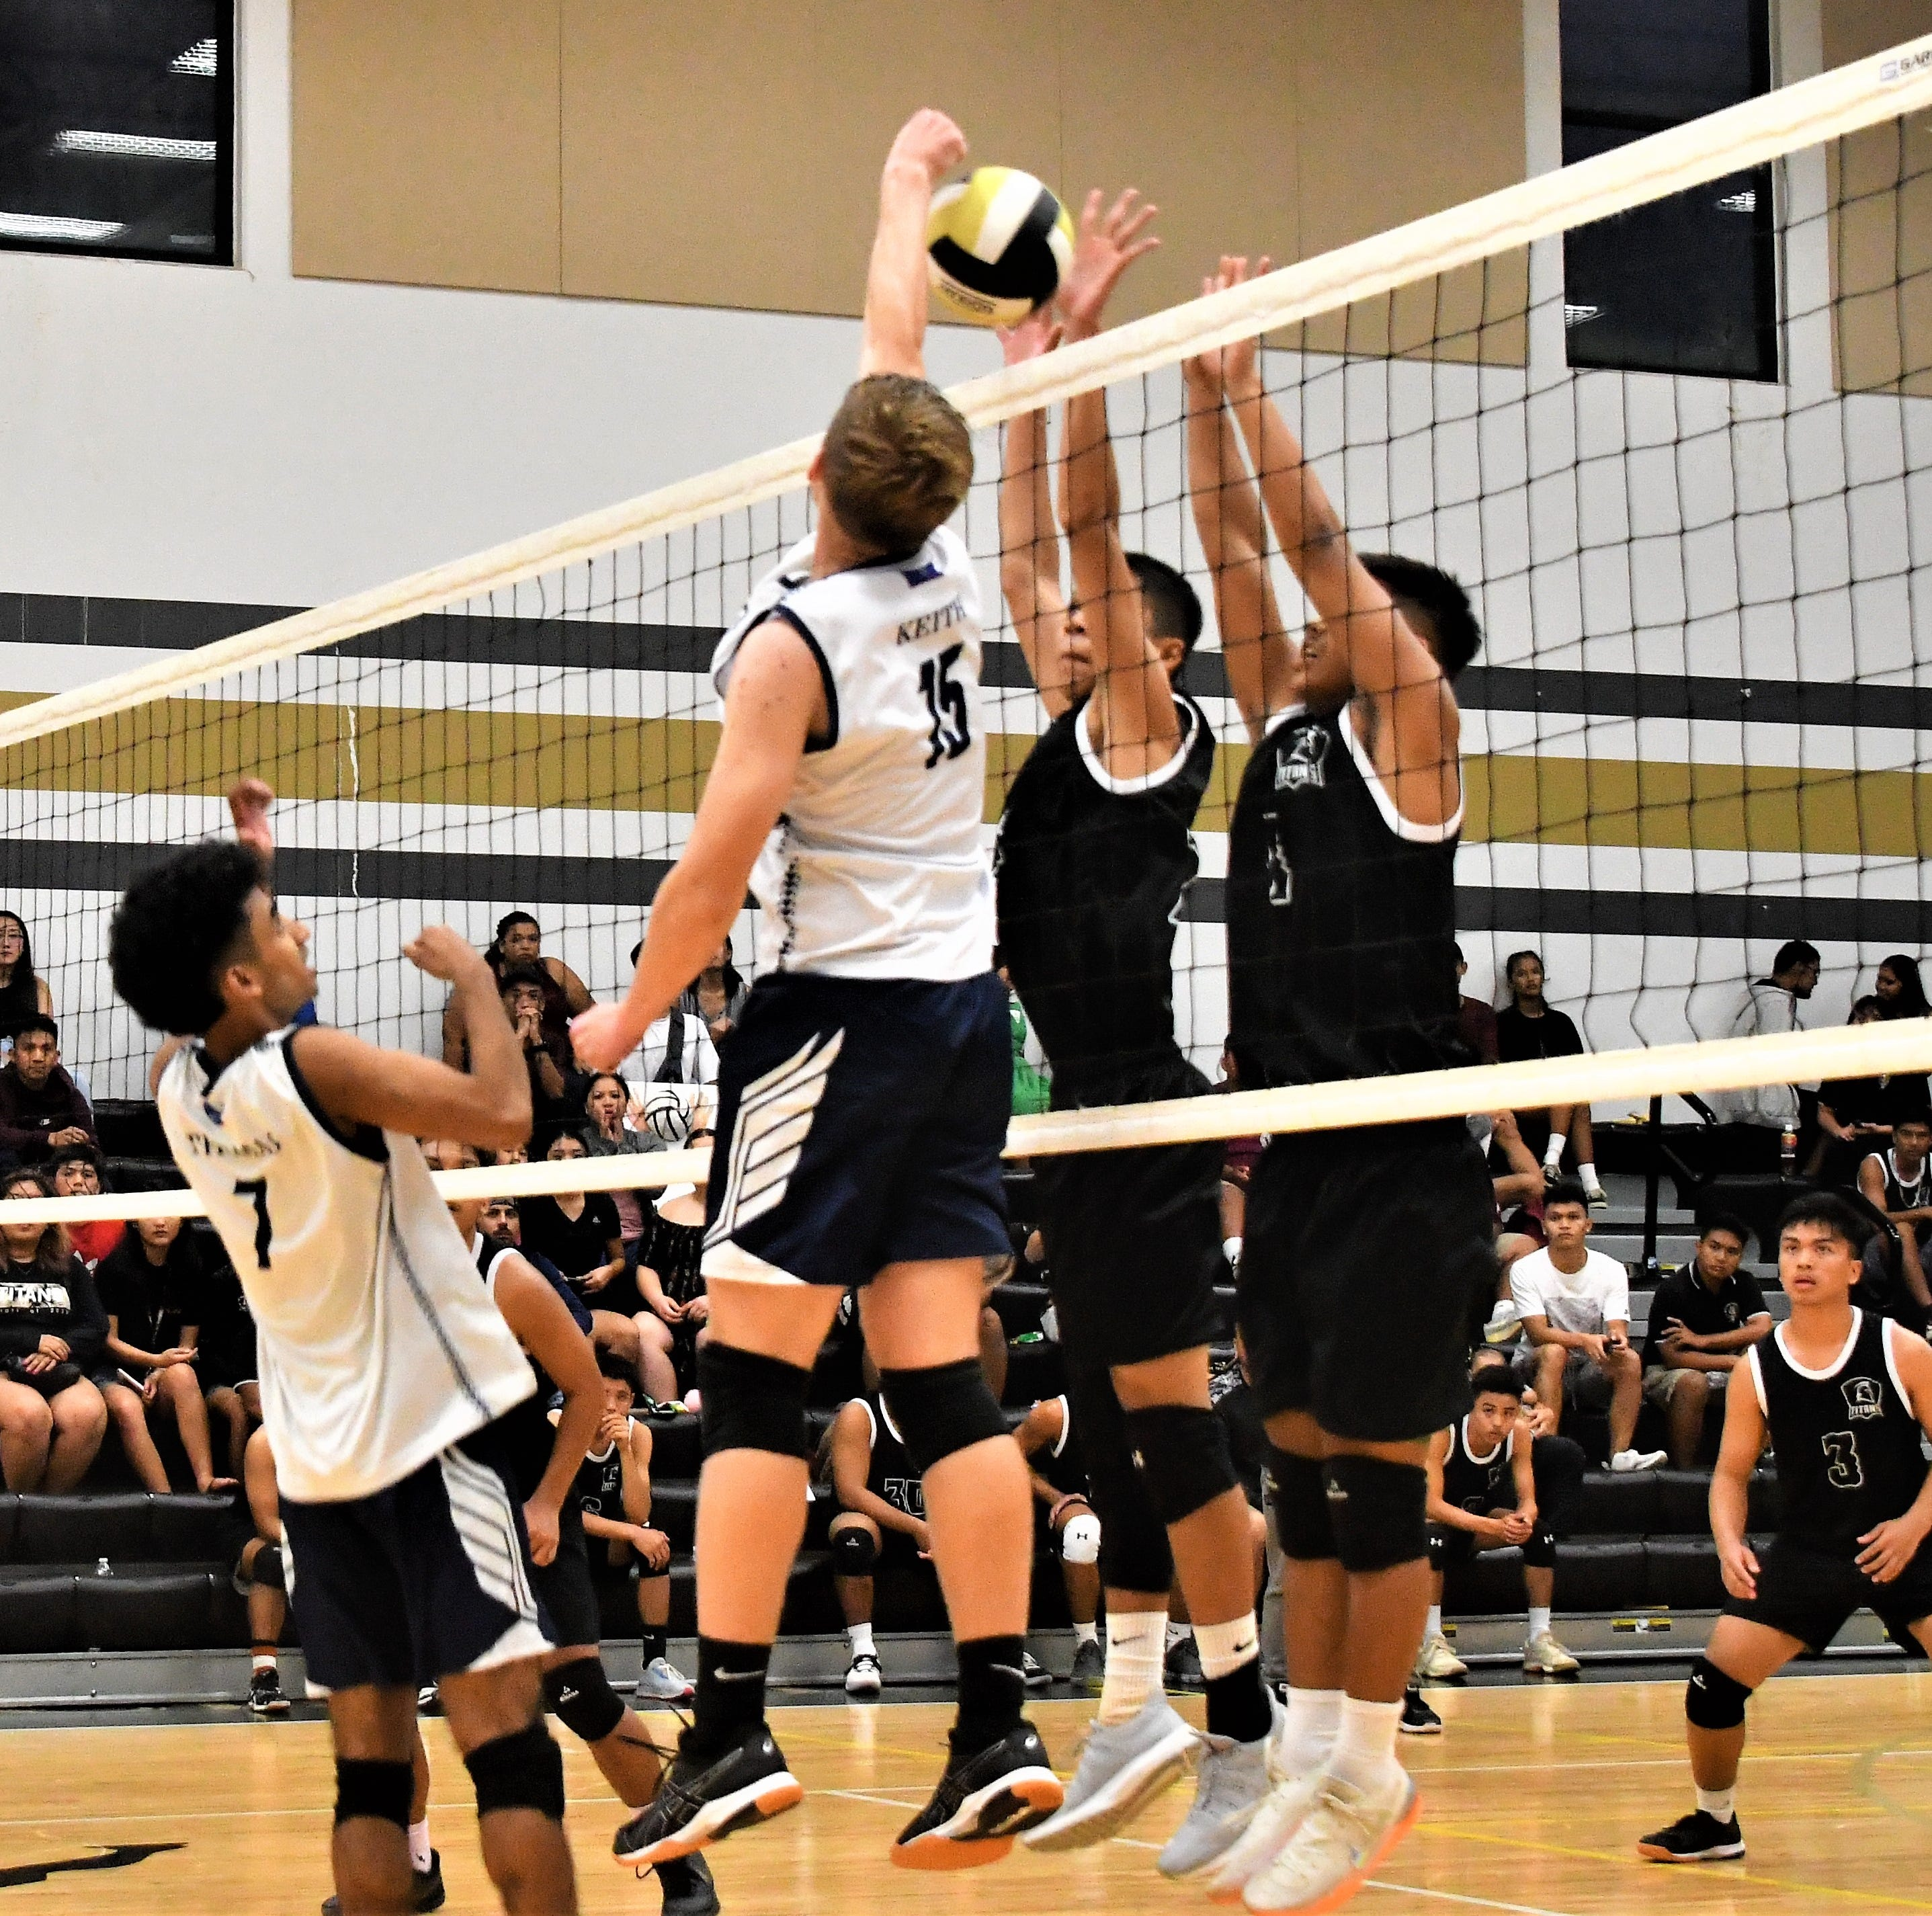 Harvest Eagles nip Tiyan Titans, advance to title match in boys volleyball